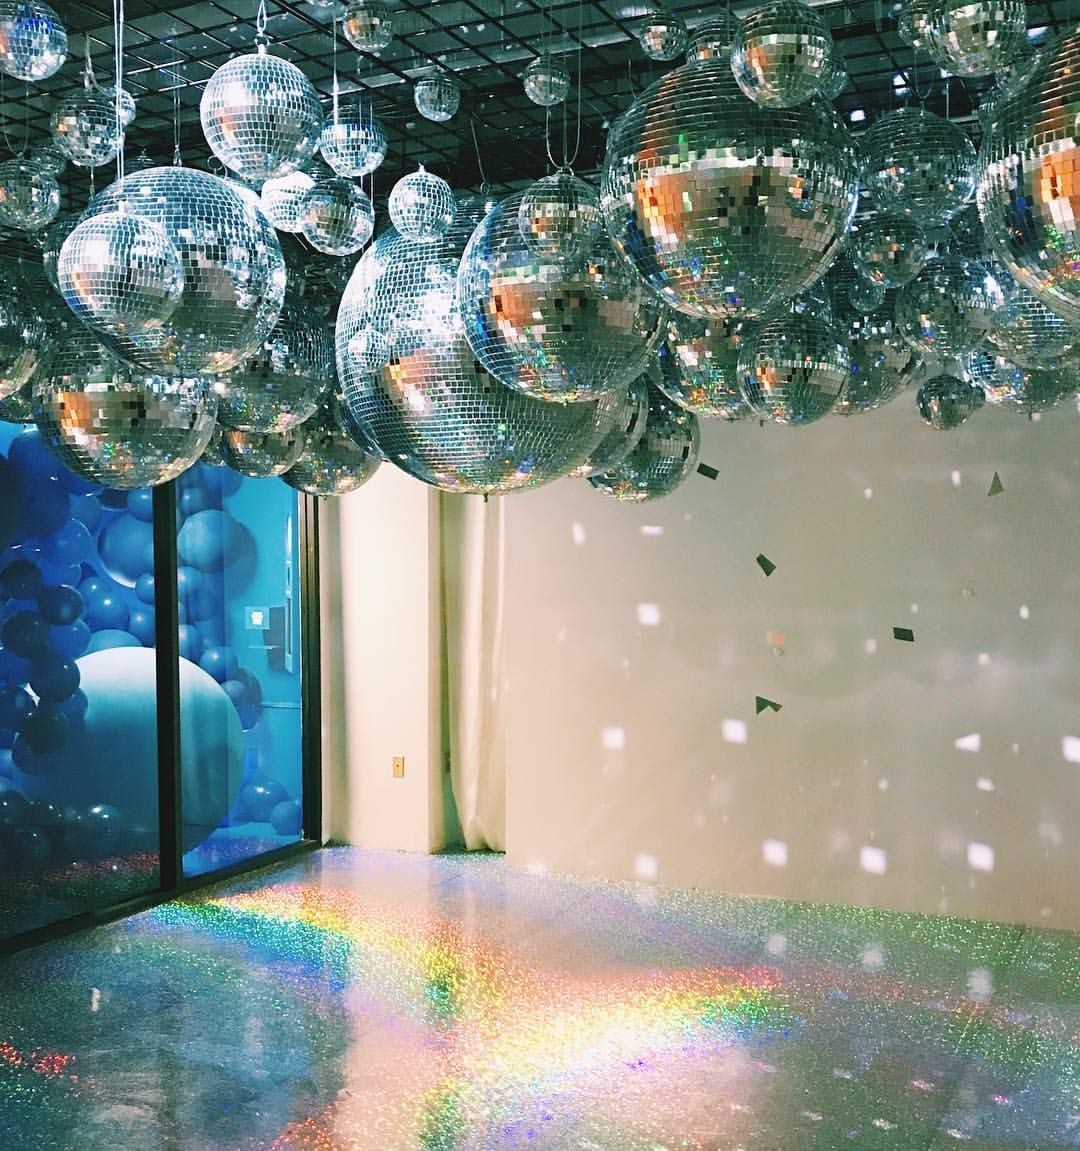 70s Background Jackie Hamilton On Instagram Finding The Right Light Discoparty Finding Hamilton Jackie Light Right In 2020 Disco Theme Disco Party Disco Ball